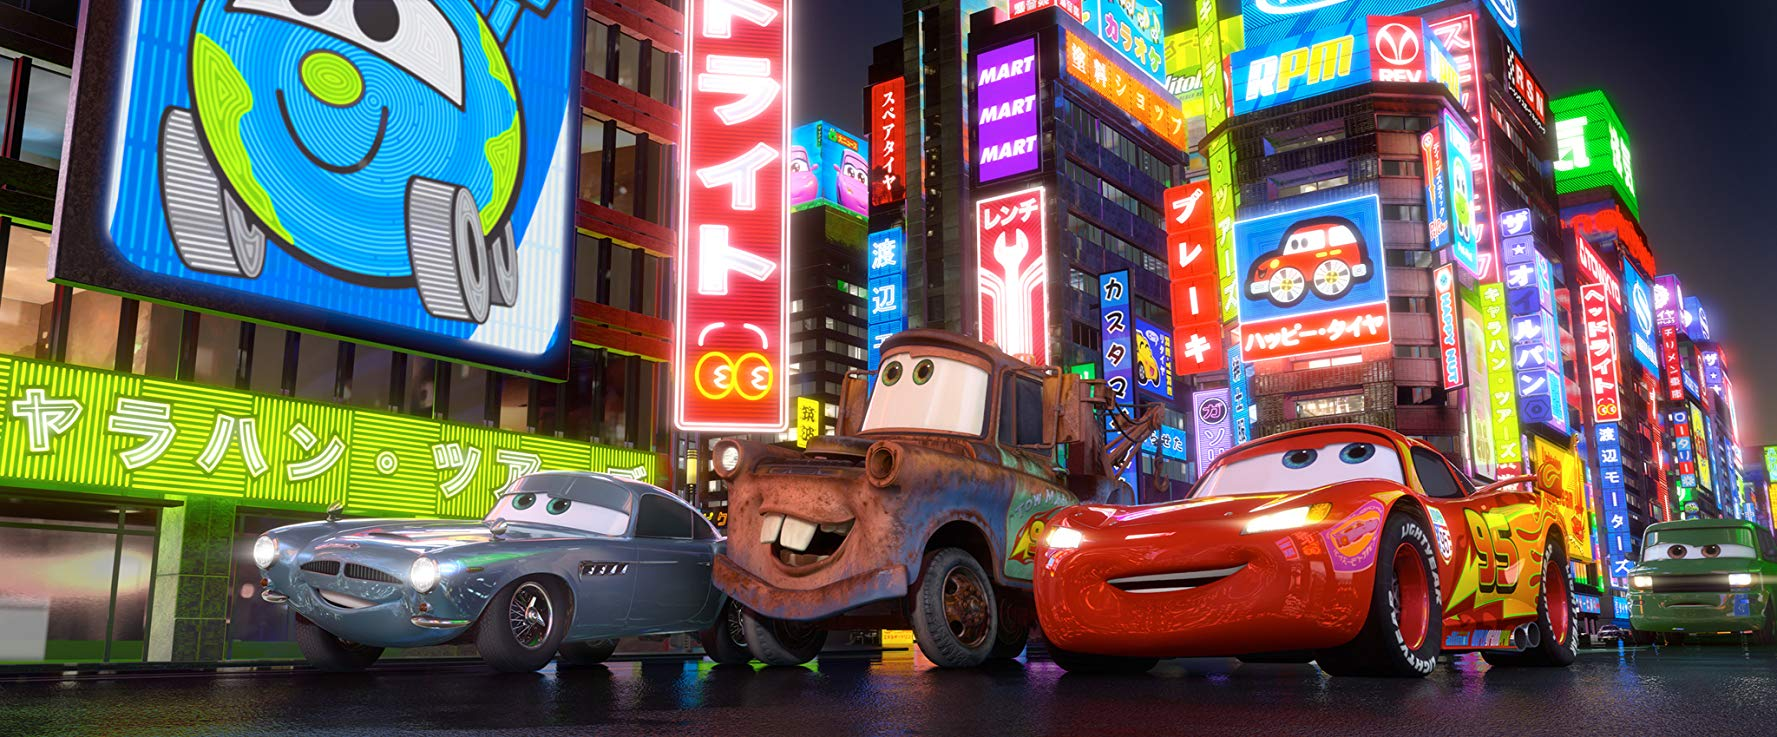 Finn McMissile (voiced by Michael Caine), Mater (voiced by Larry the Cable Guy) and Lightning McQueen (voiced by Owen Wilson) visit Japan in Cars 2 (2011)